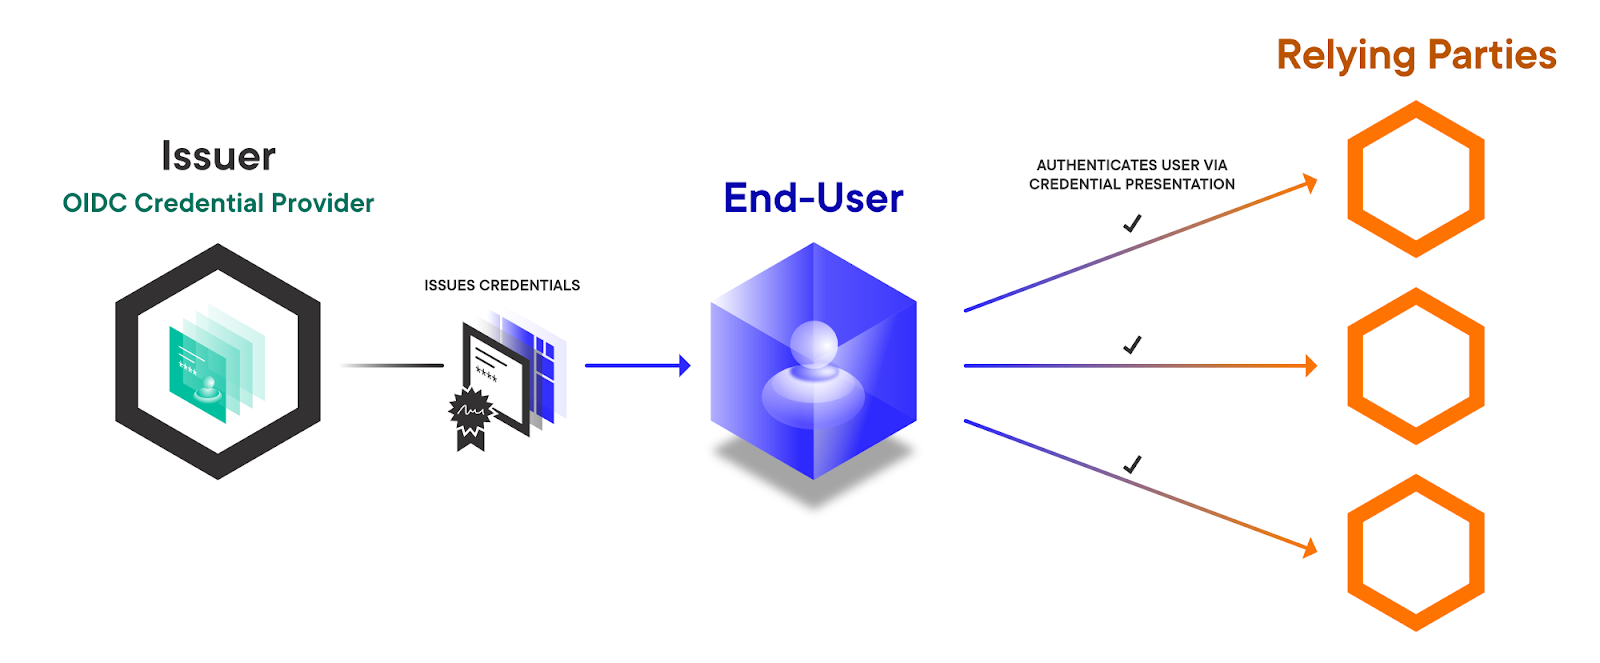 OIDC Credential Provider allows the user to manage their own credentials